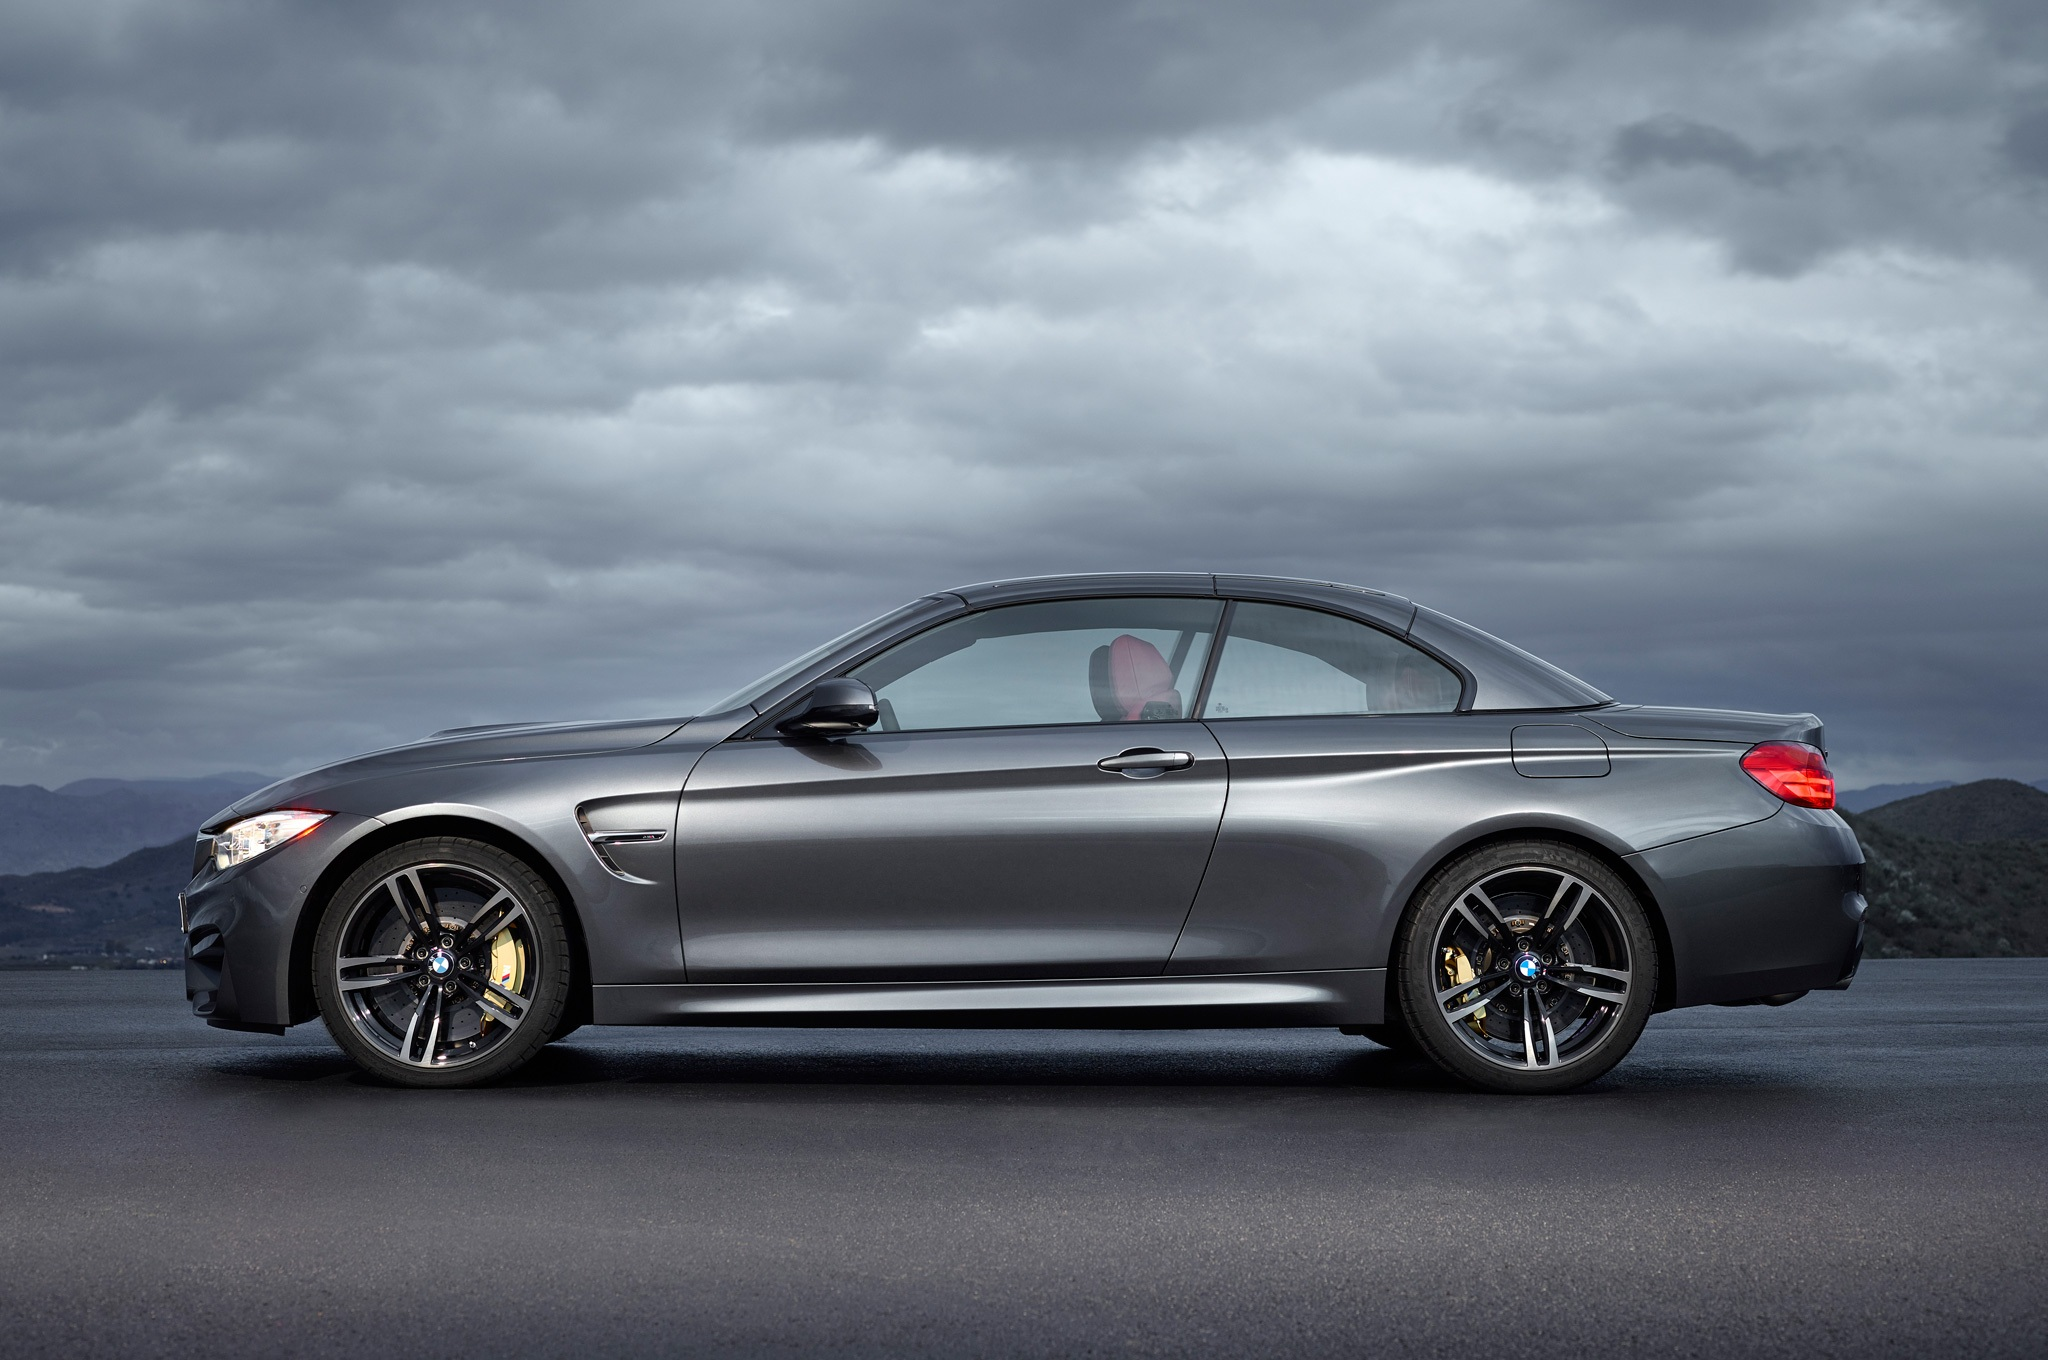 2015 Bmw M4 Convertible Side Design Top Up (View 2 of 50)